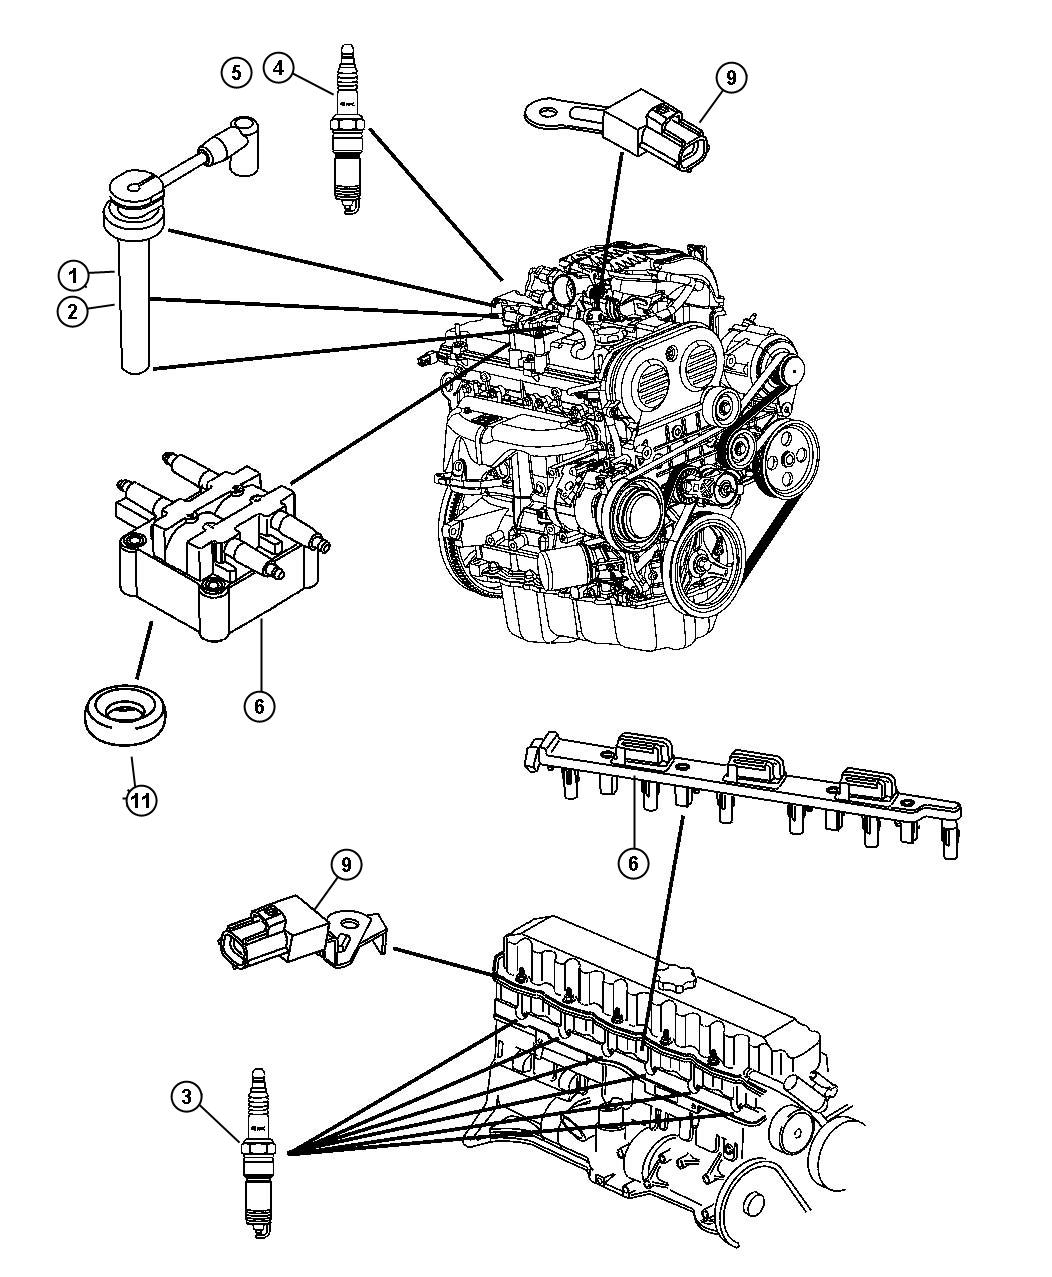 00i95711 Jeep Coil On Plug Wiring Diagram on coil over conversion kit, coil on plug ecu, coil pack diagram, 2005 mustang gt coil diagram, coil on plug bmw, coil on plug system, coil on plug conversion, ignition coil diagram, 1975 ford truck coil diagram, coil on plug specification, external resistor coil diagram, 3 wire plug diagram, coil with ignitor wiring-diagram, coil on plug engine,